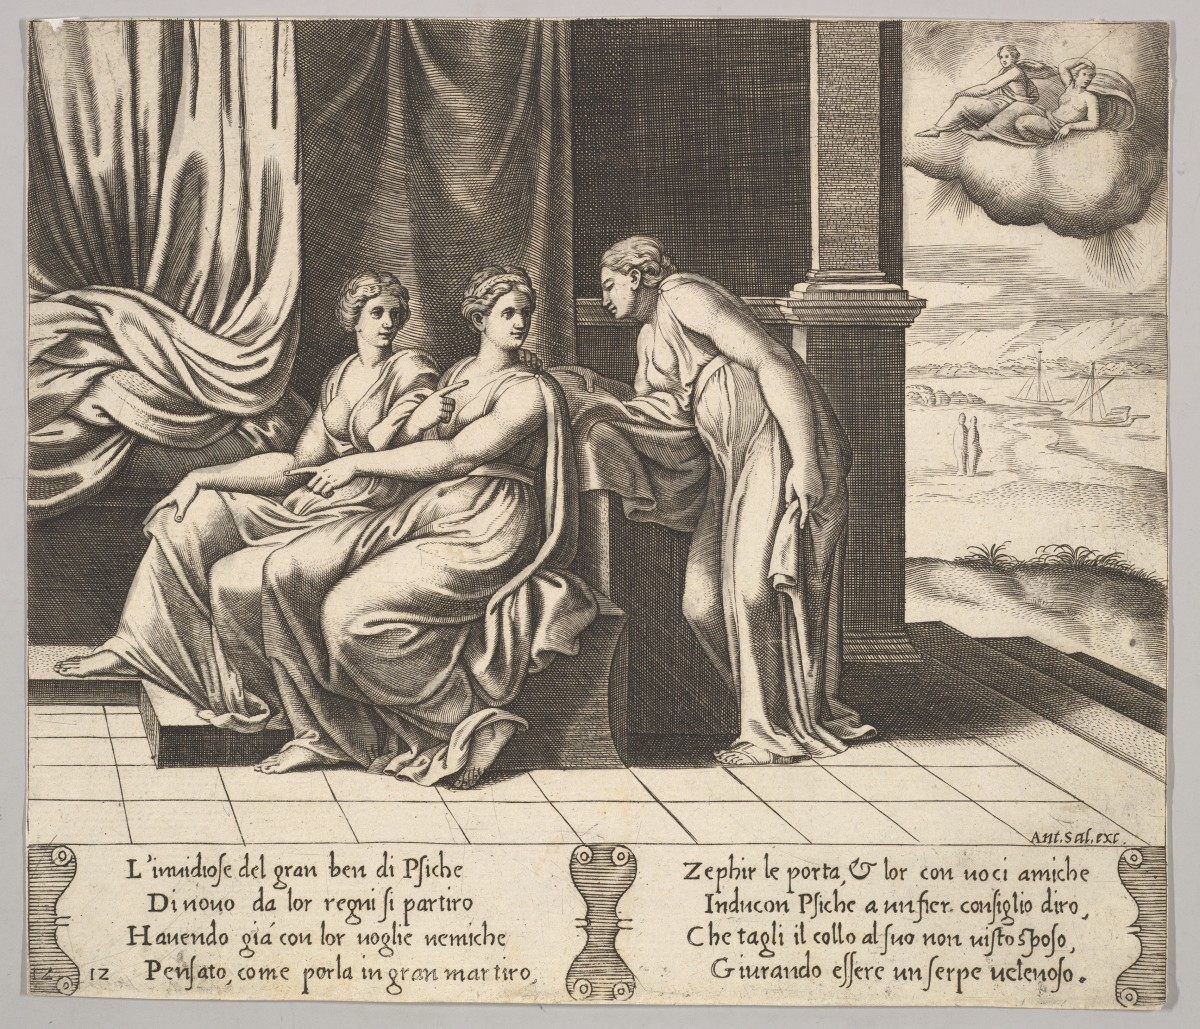 Psyche's sisters persuade her a serpent is sleeping with her